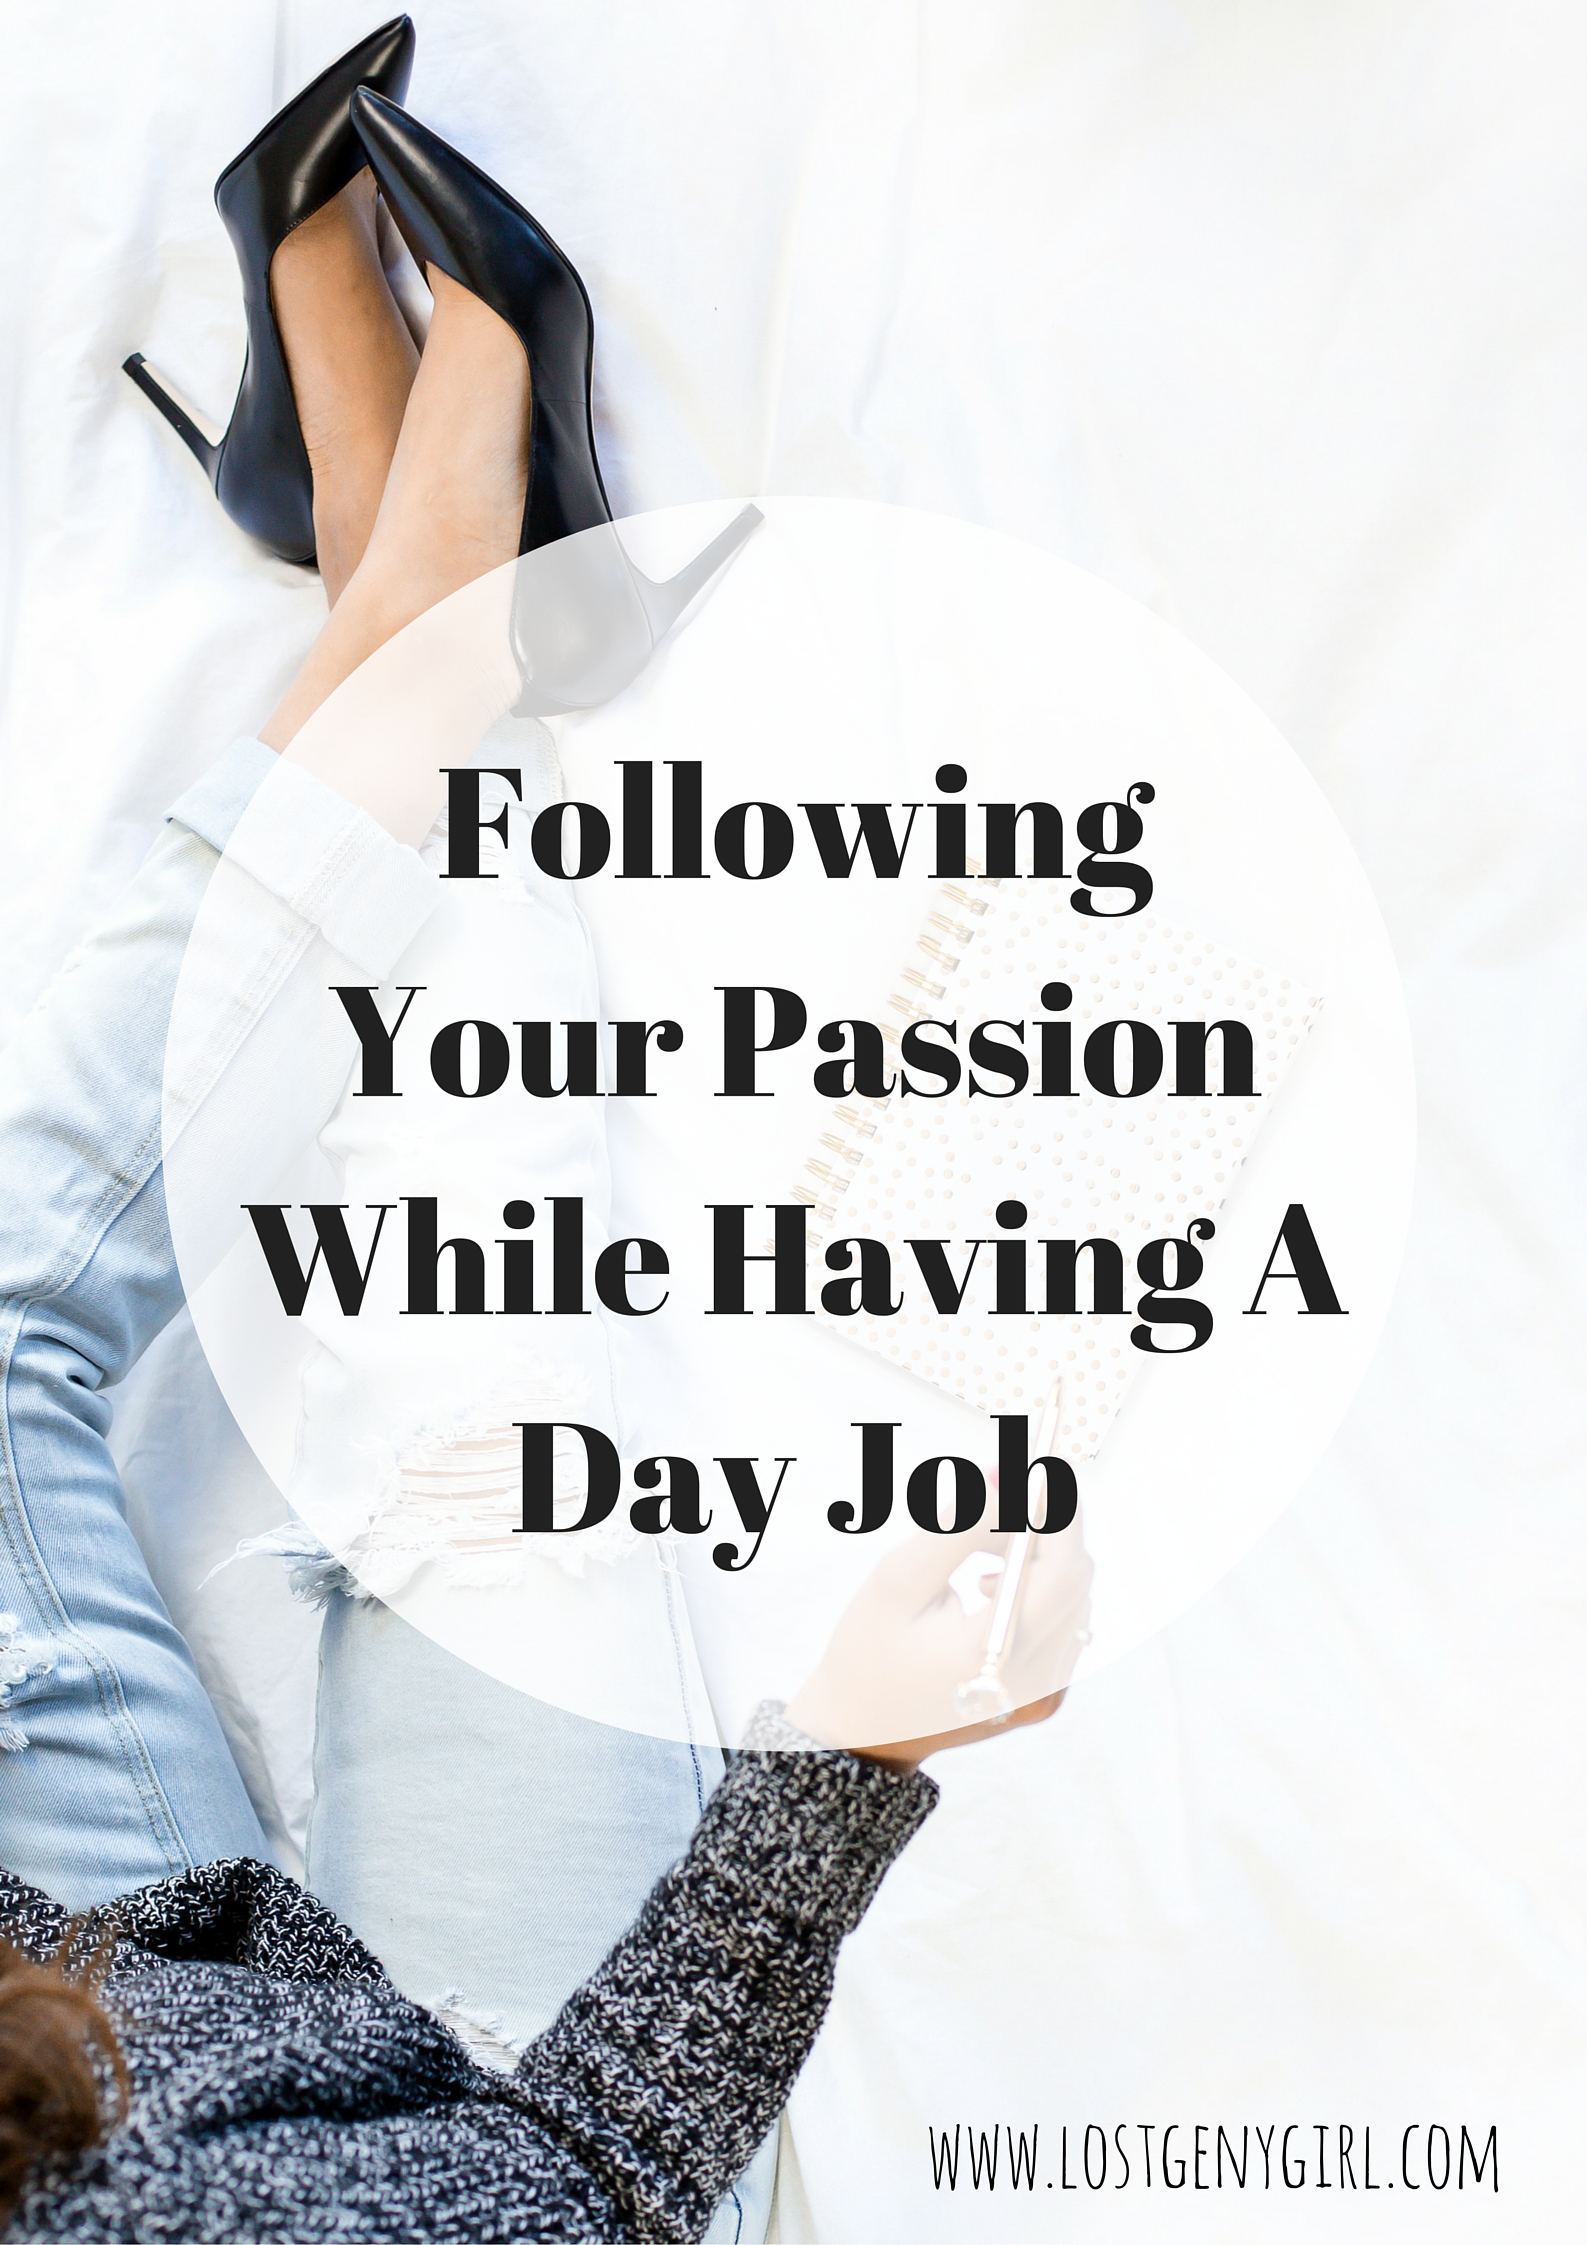 Following Your Passion While Having A Day Job